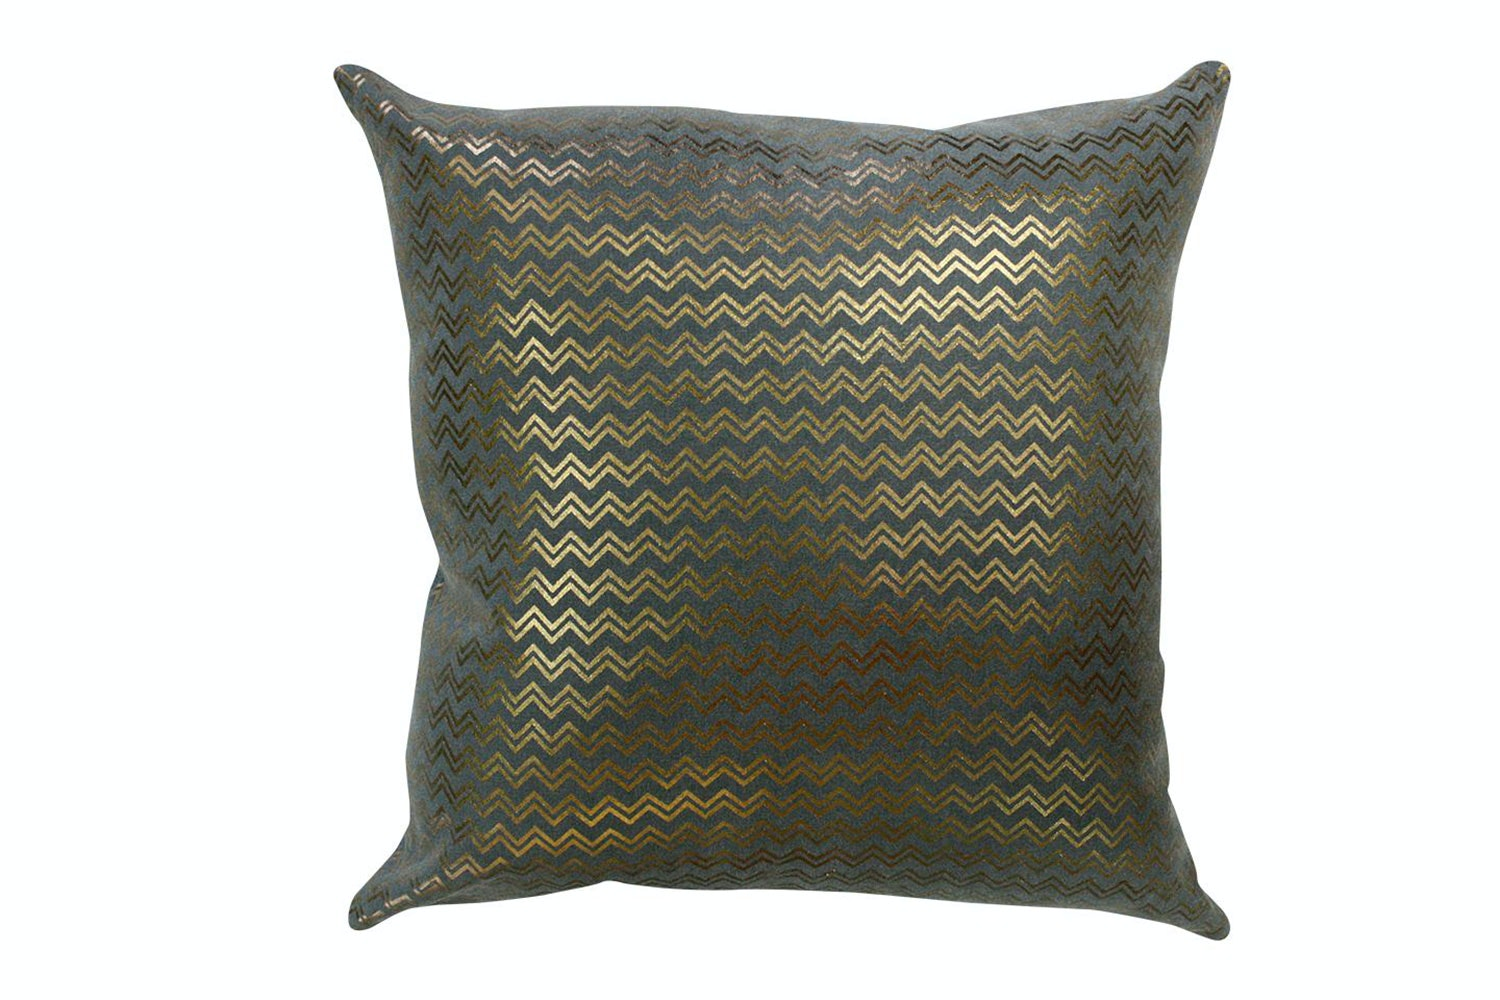 Shimmering Waves Copper Charcoal Cushion - Limon